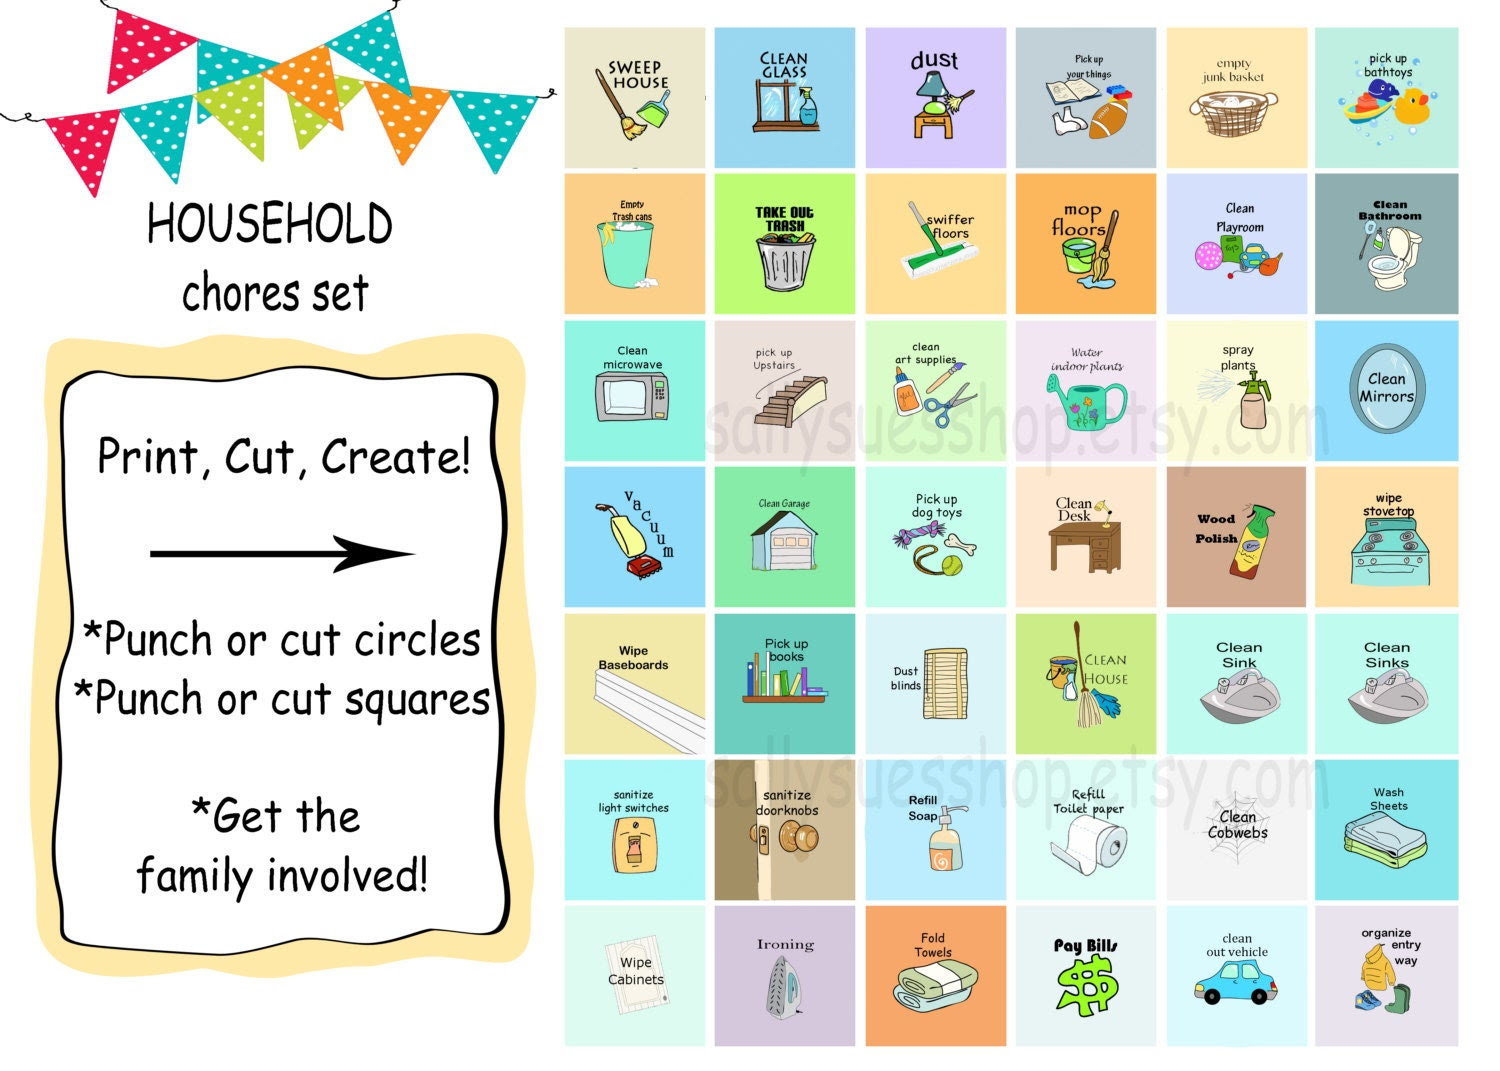 DAILY CHORES Printable chores/digital collage/1 by SallySuesShop